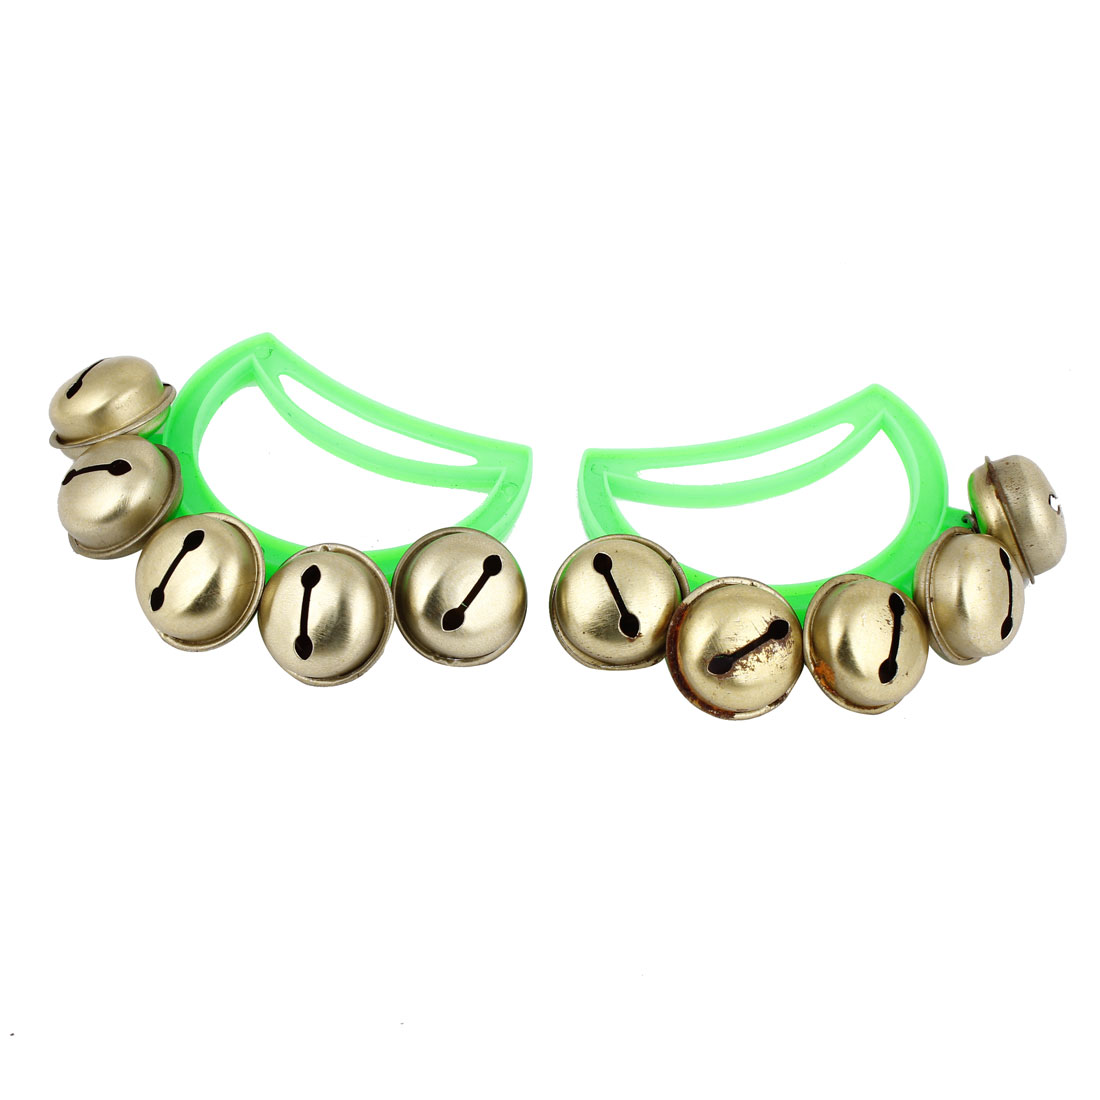 2 Pcs Xmas Party Green Plastic Handle Hand Shaking Gold Tone Jingling Bells